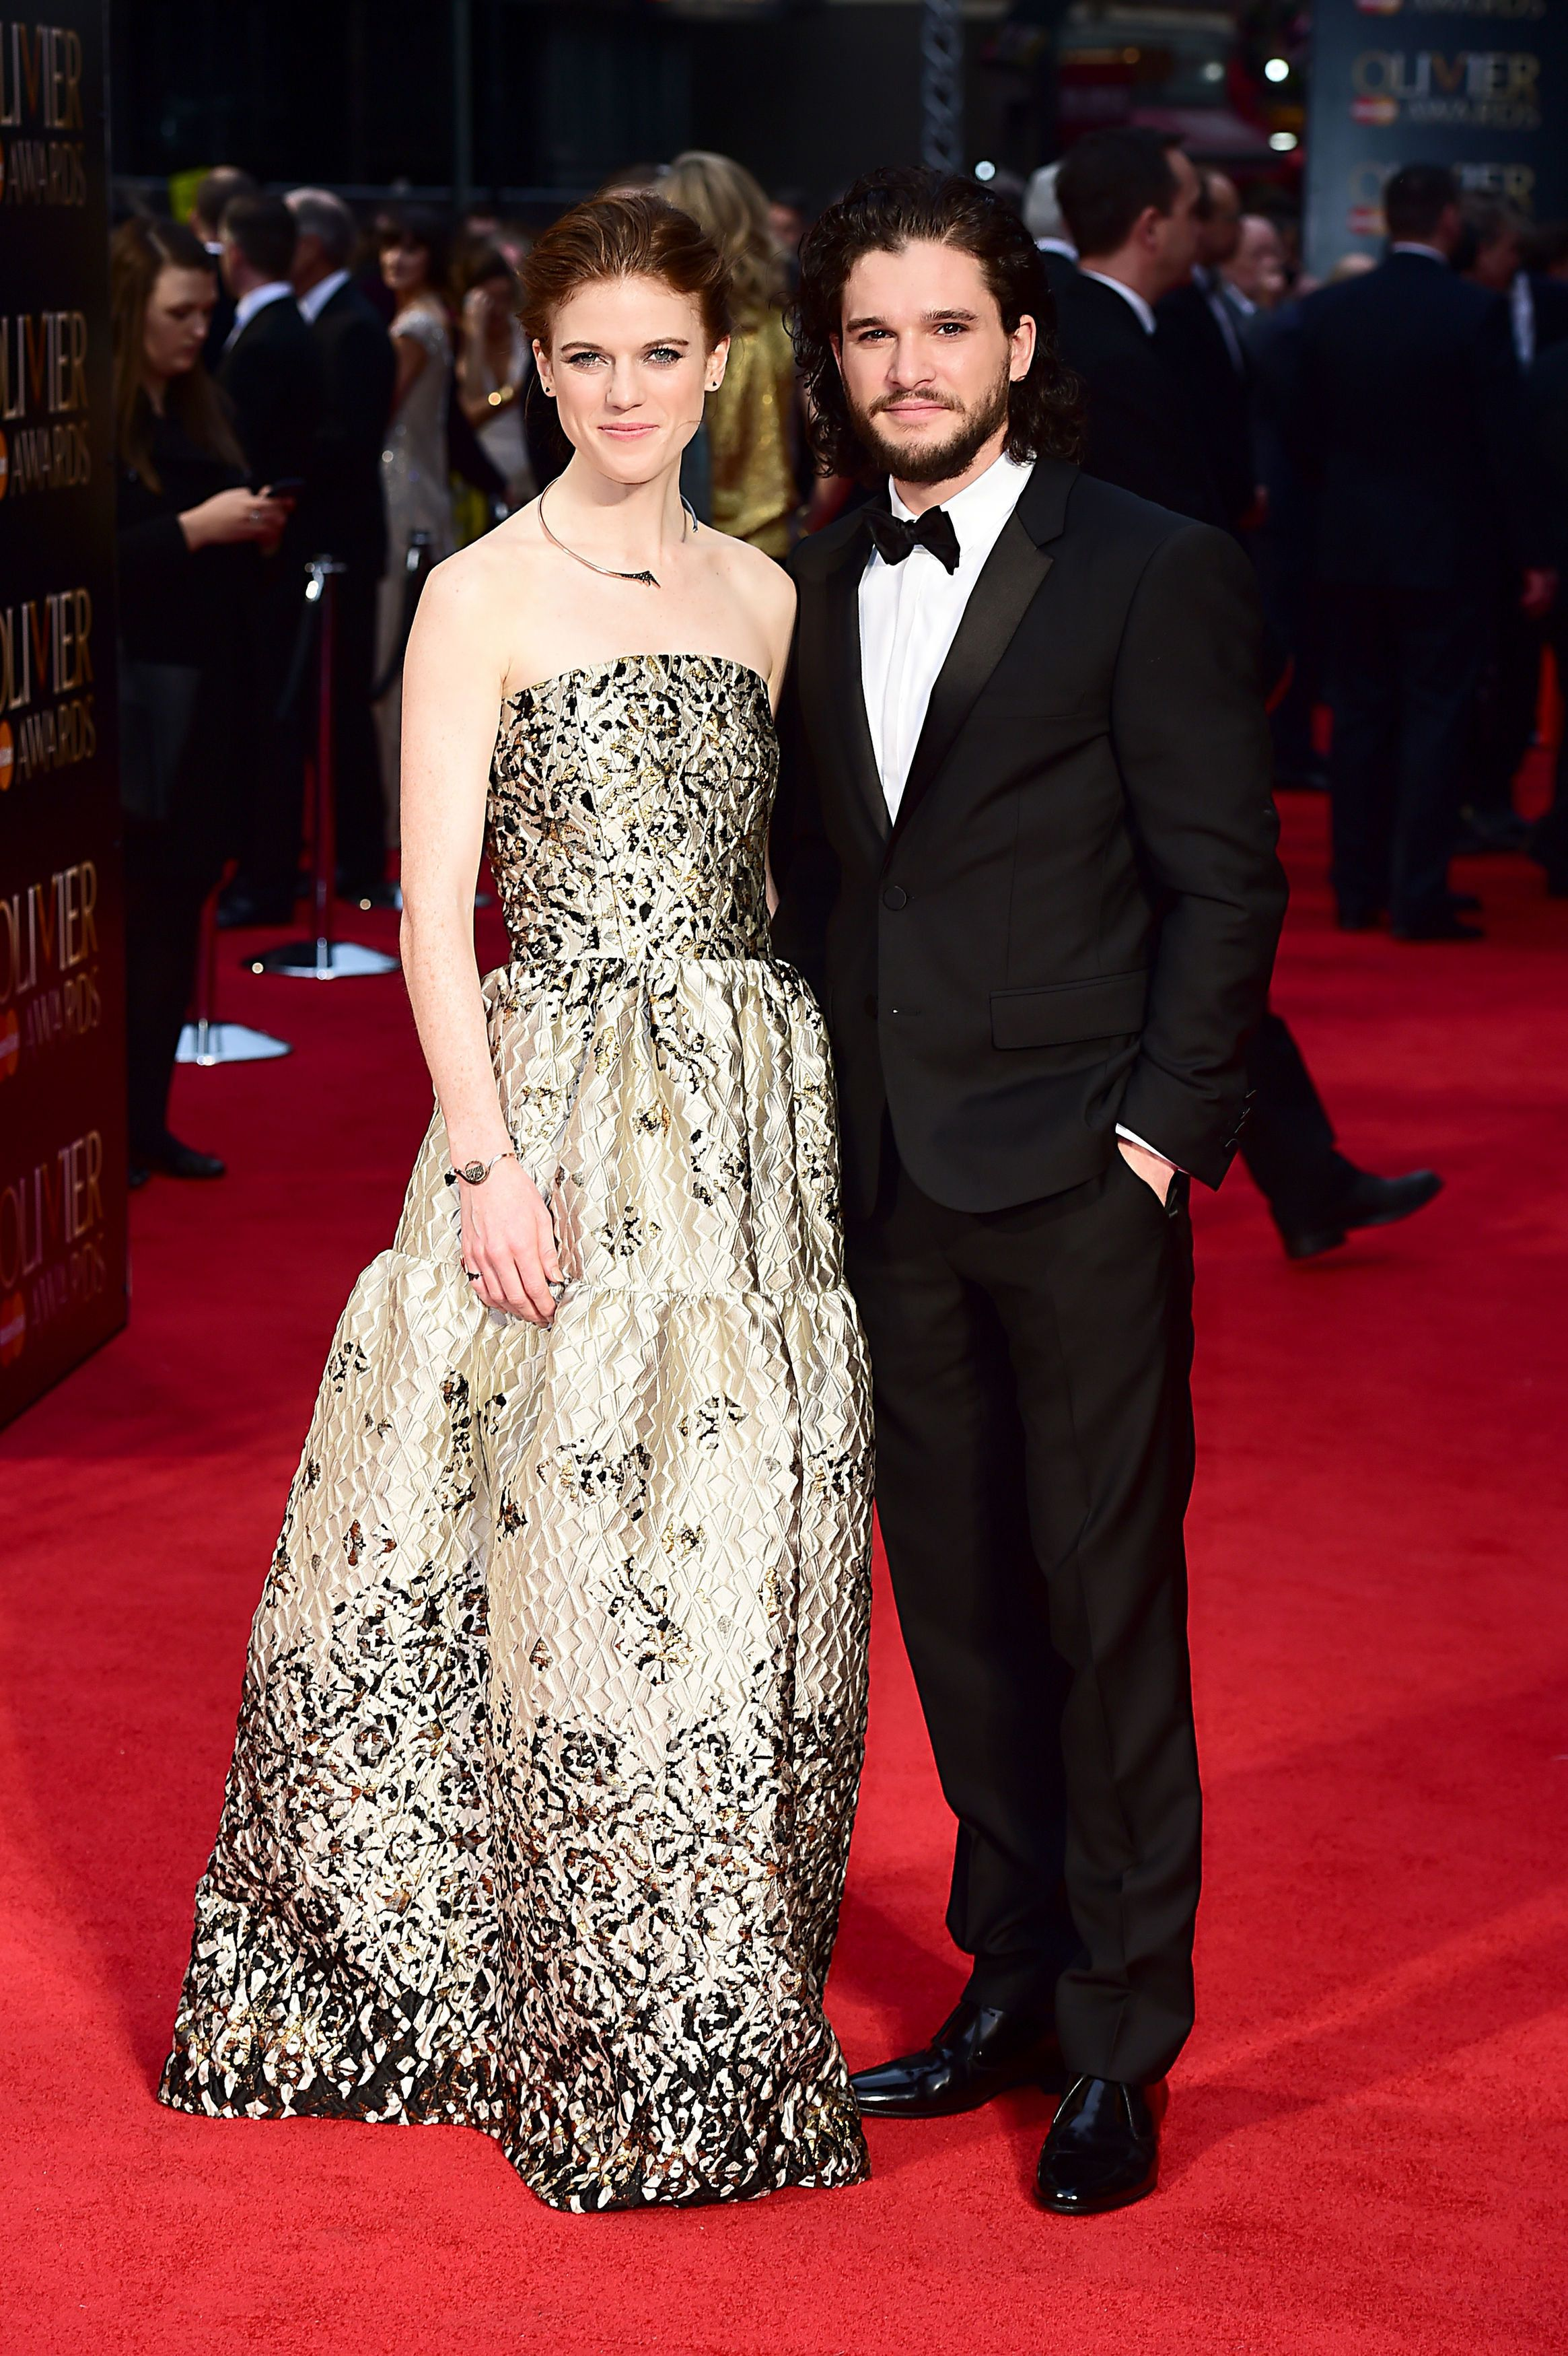 'Game Of Thrones' Kit Harington And Rose Leslie Forced To Speak Out Over Engagement